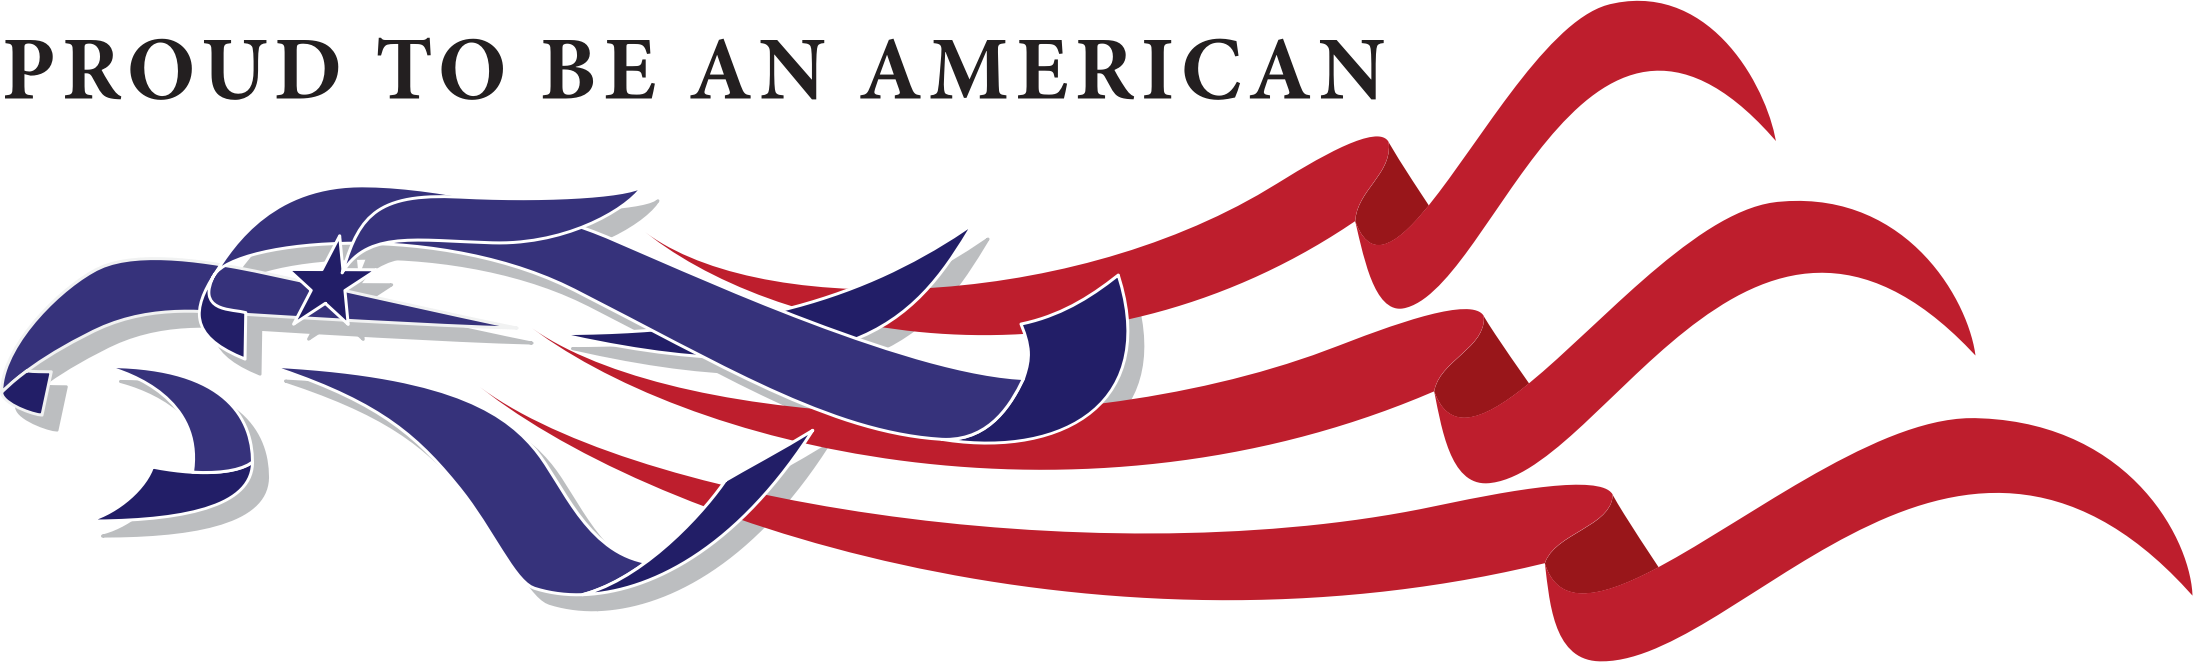 American group proud to. Louisiana clipart pride